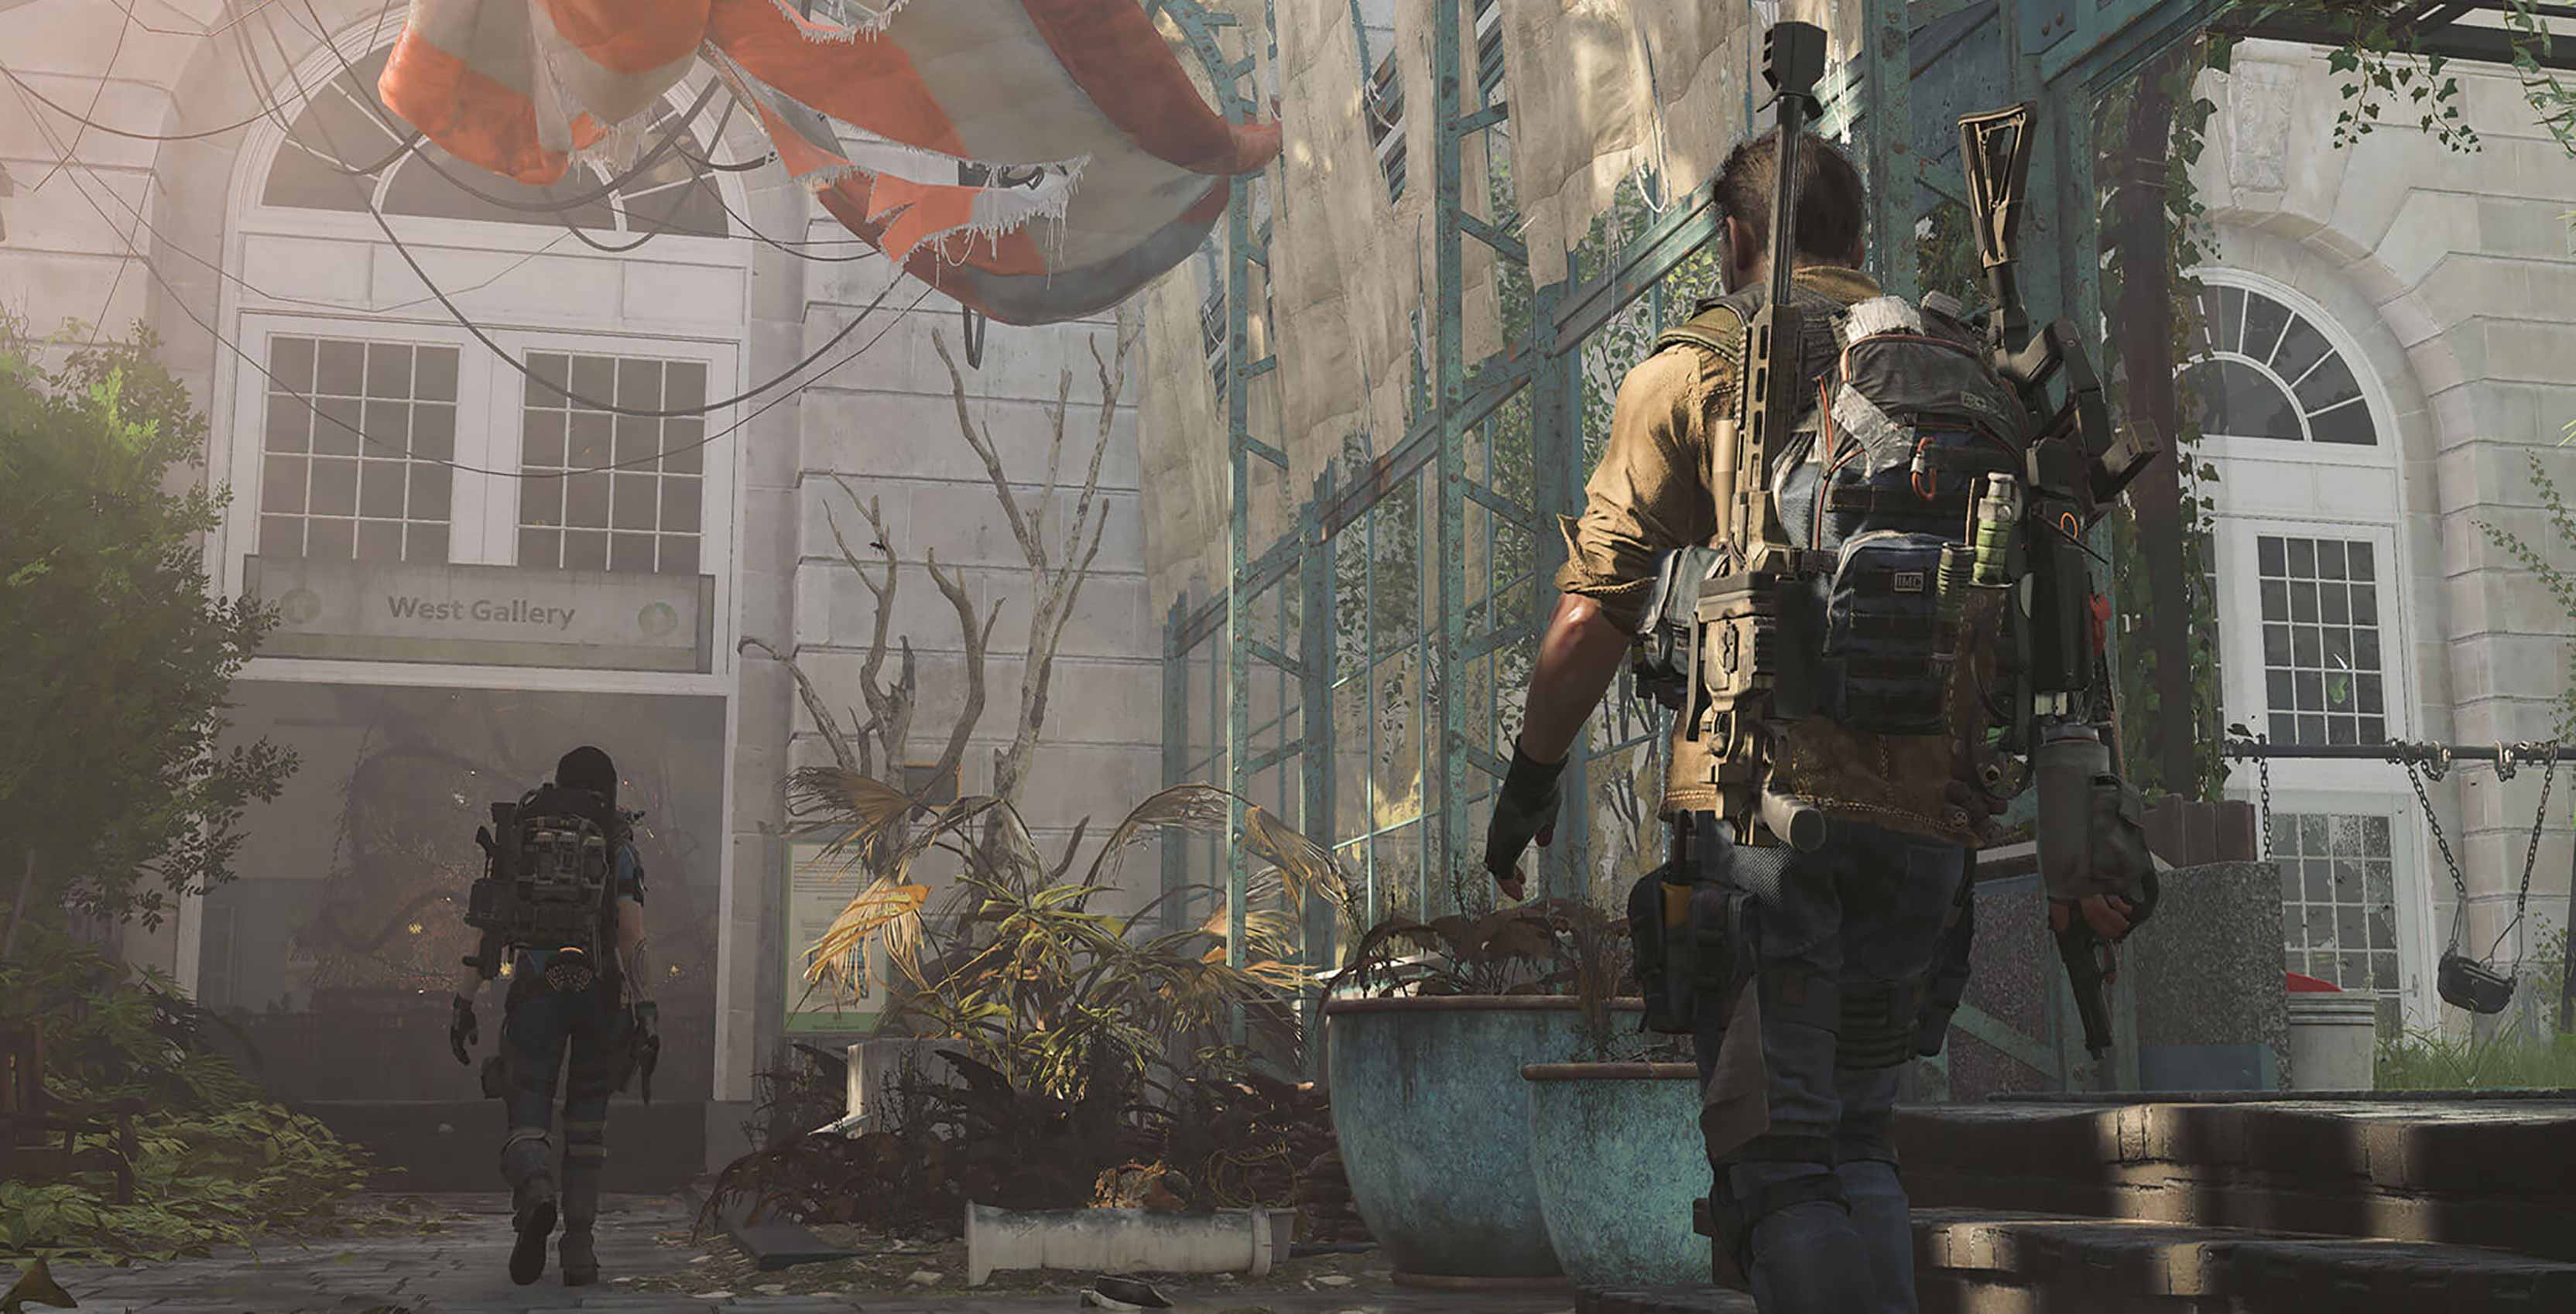 'The Division 2' Coming to Epic Games Store, Pulled From Steam